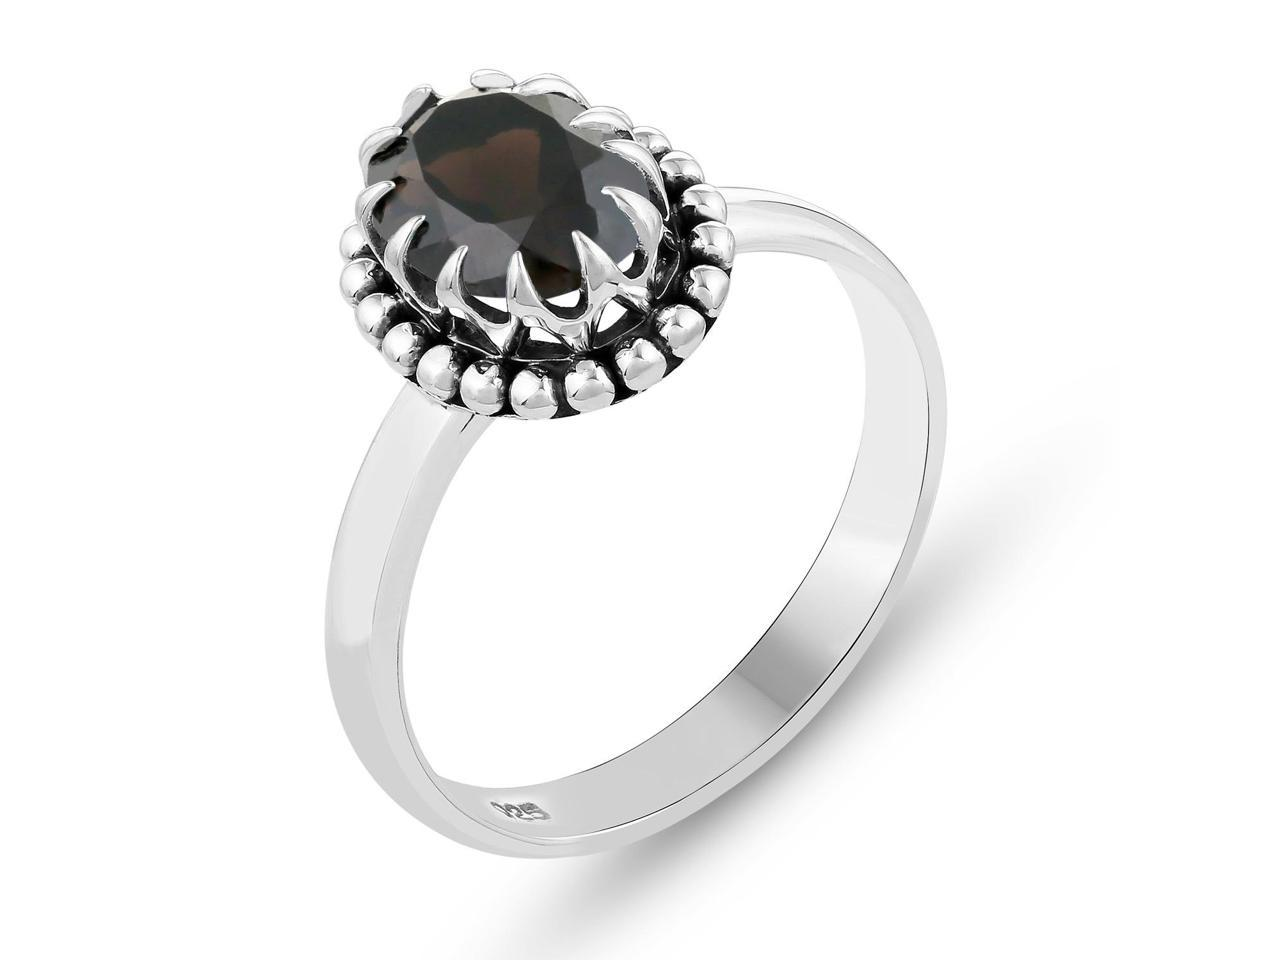 Oxidized silver jewelry Gemstone gift Jewelry sale Ring with Cubic zirconia Personalized jewelry Black silver ring Floral jewelry set